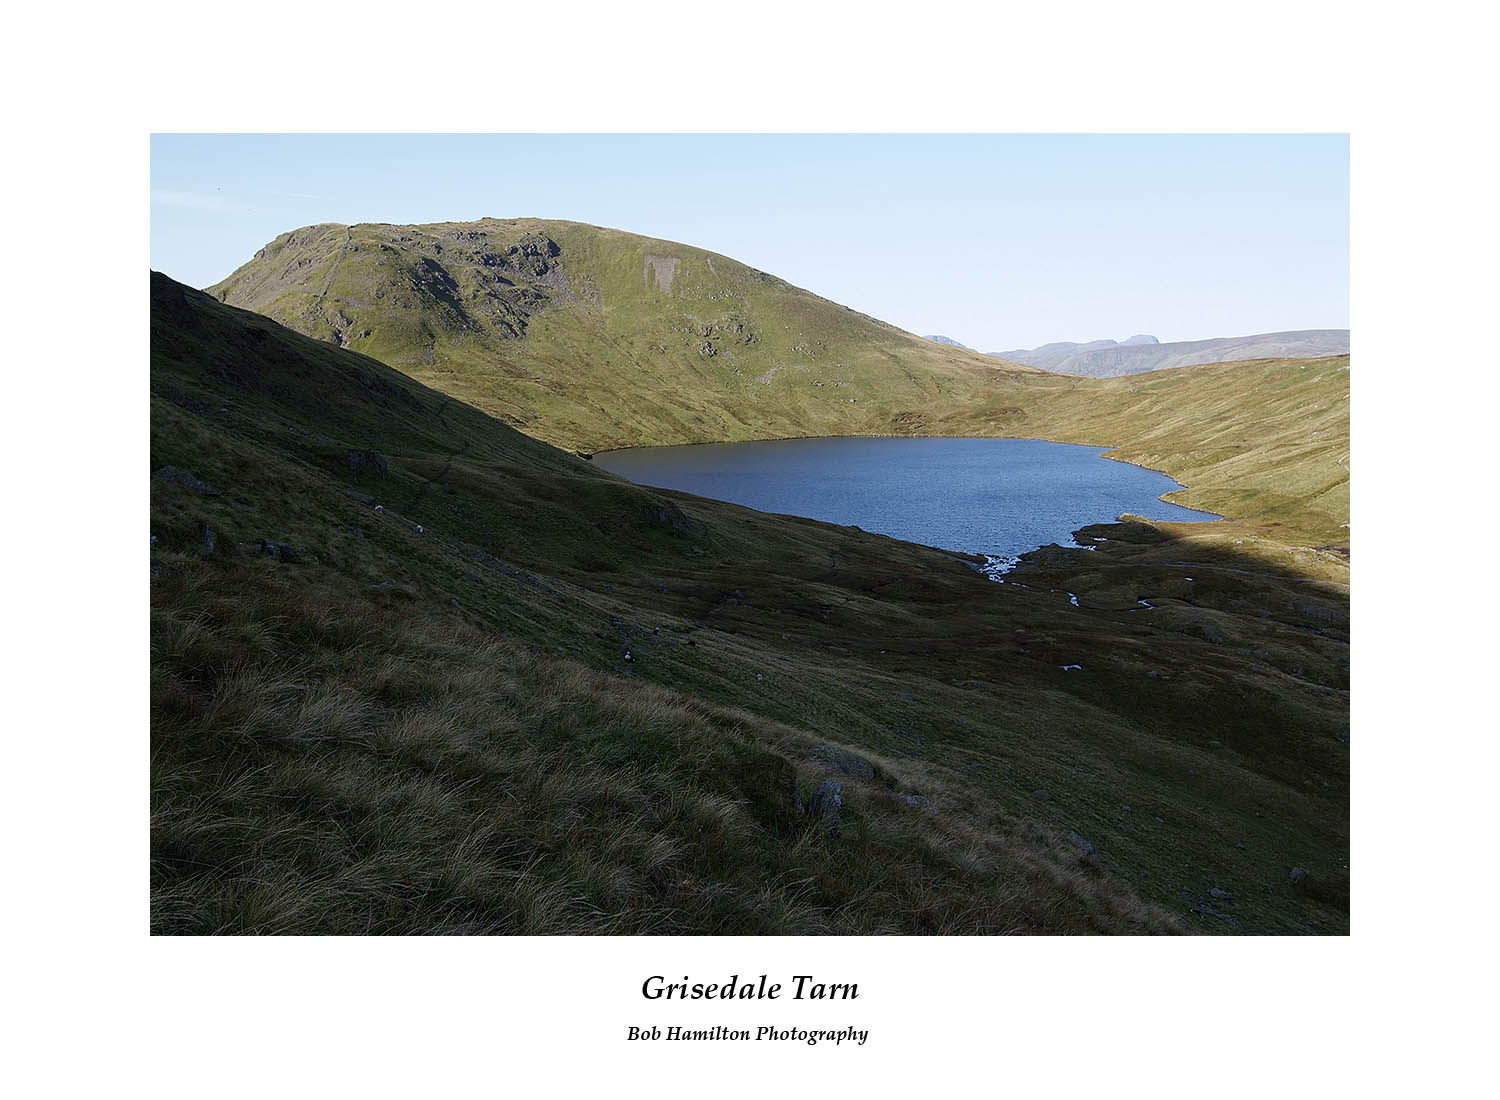 DSF1037 Seat Sandal over Grisedale Tarn